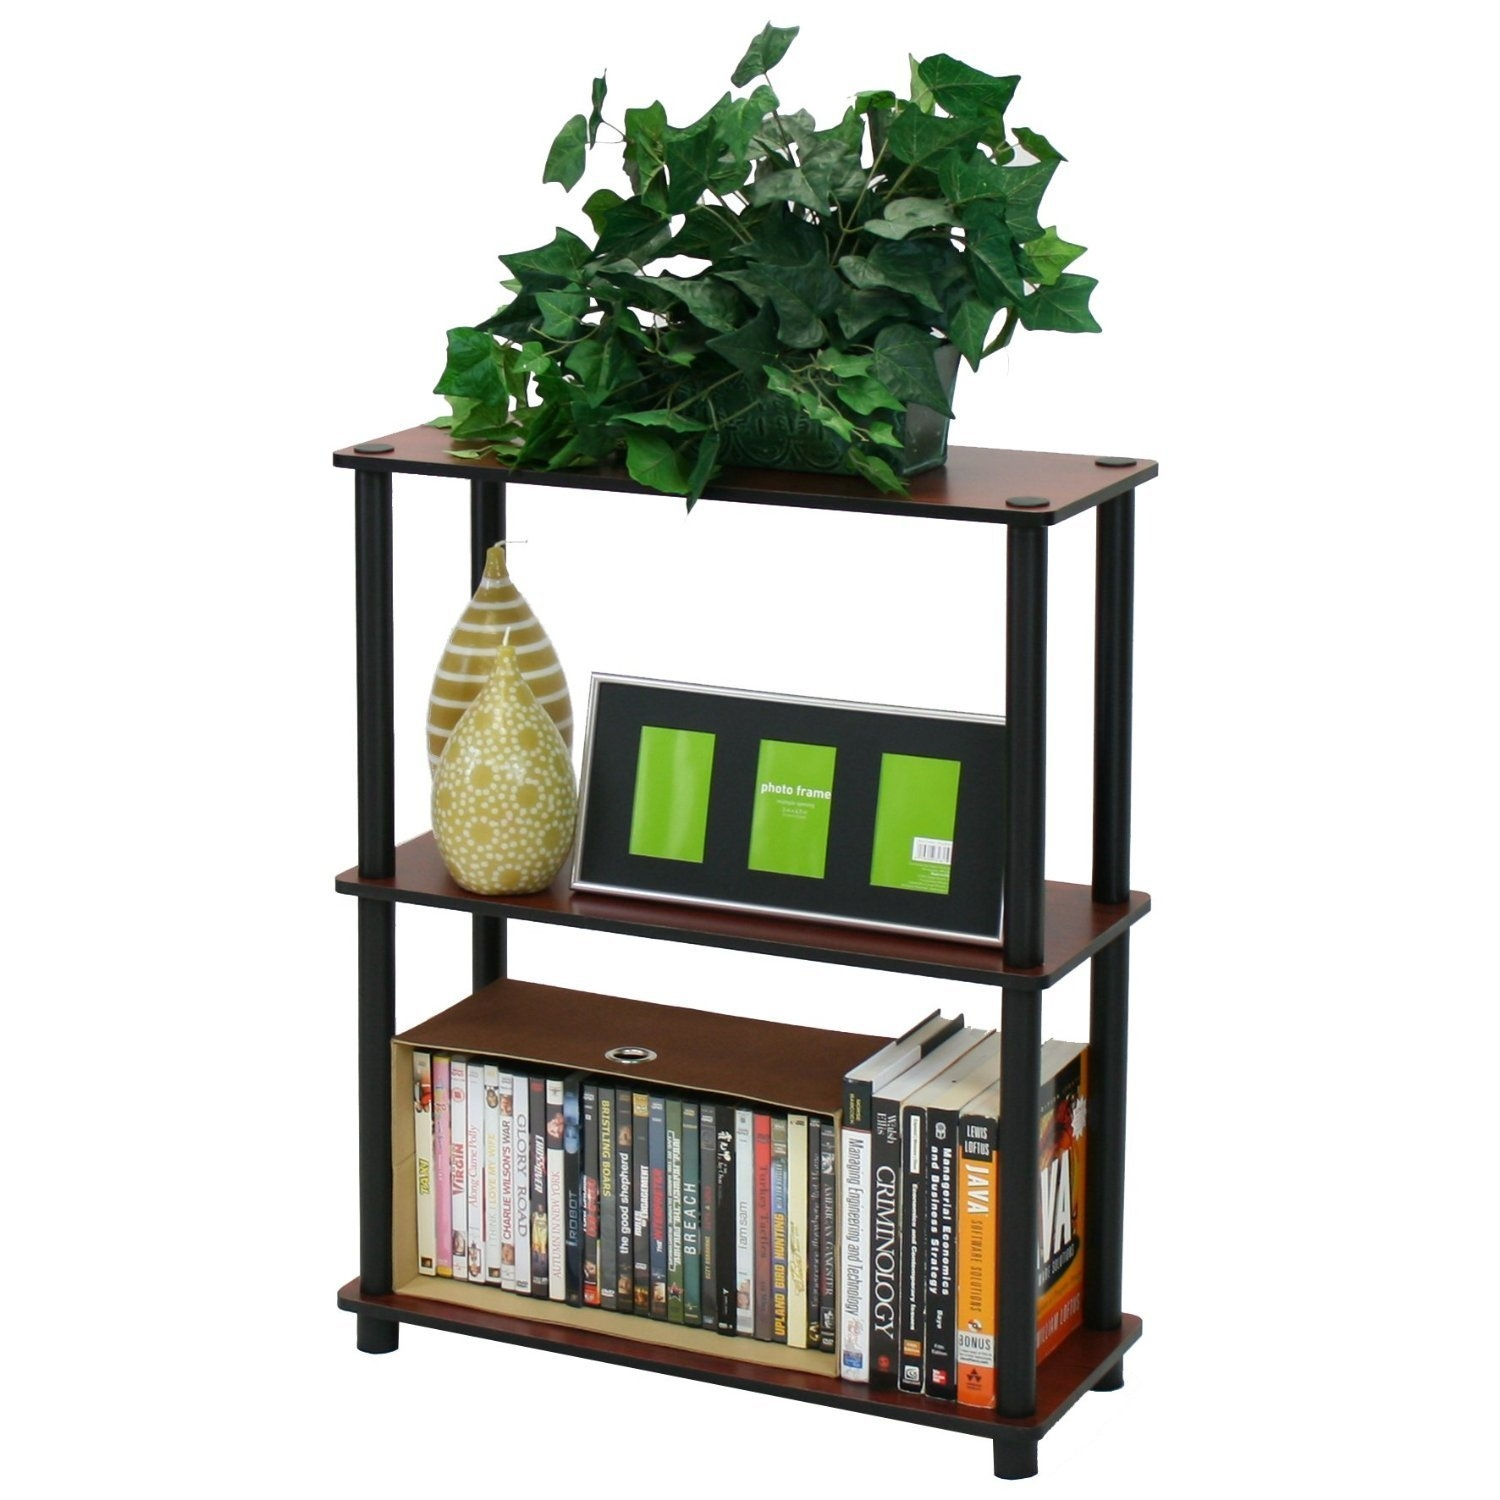 This Dark Cherry and Black 3-Tier Shelves Display Bookcase is designed to meet the demand of low cost but durable and efficient furniture. It is proven to be the most popular furniture due to its functionality, price, and the no hassle assembly. The materials comply with e1 grade particle board for furniture. There is no foul smell of chemicals, durable and it is the most stable particleboard used to make furniture. Care instructions: wipe clean with clean damped cloth. Avoid using harsh chemicals. We are pleased to send you the replacement part free of charge. Pictures are for illustration purpose. All decor items are not included in this offer. Pictures are for illustration purpose. All decor items are not included in this offer.